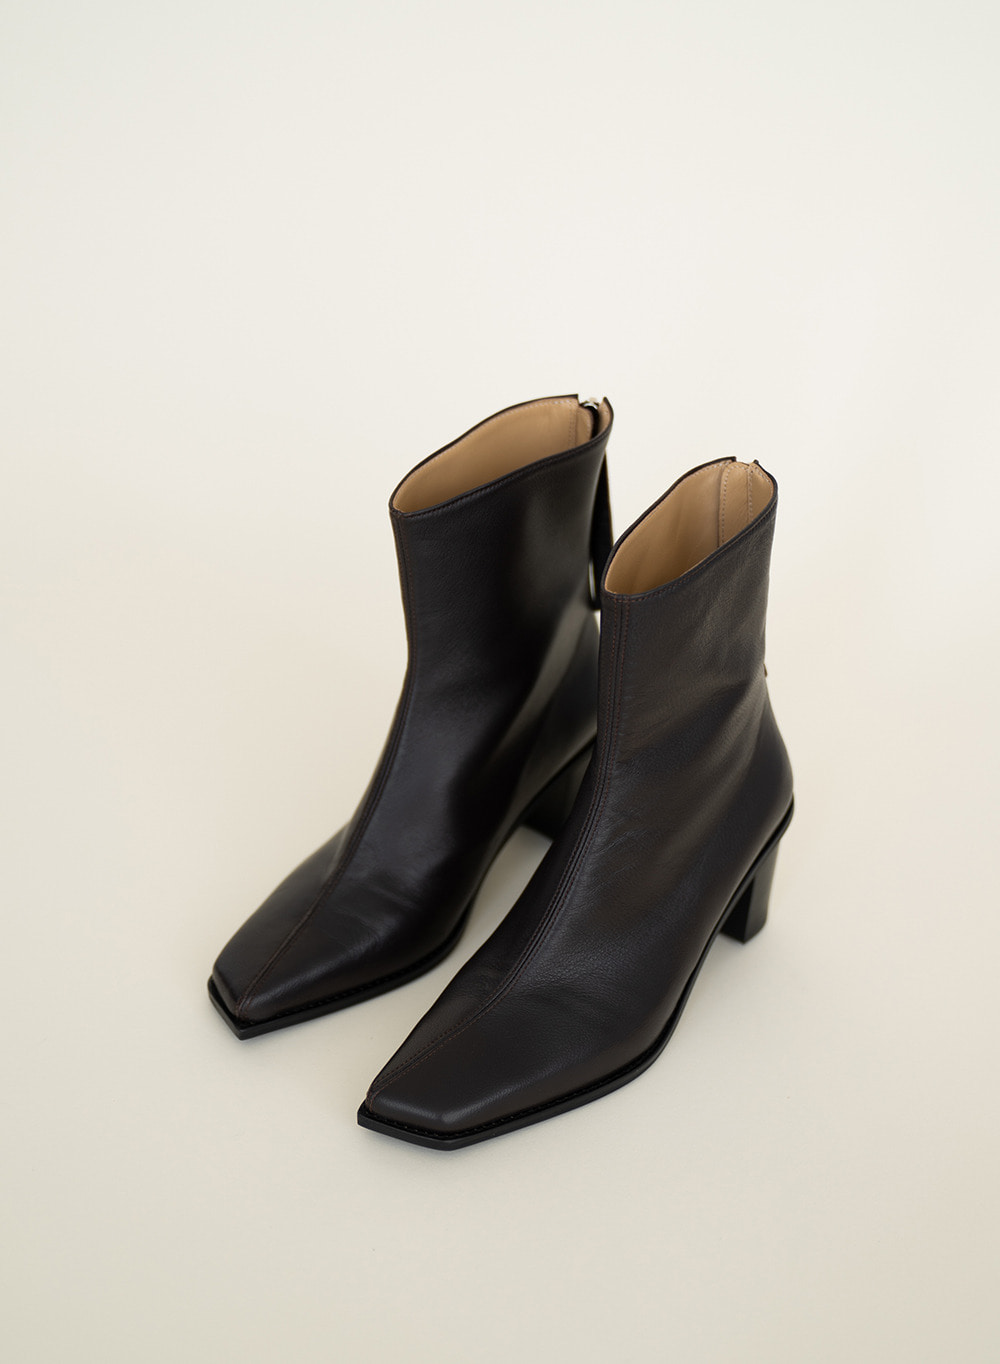 FW21 Nuoy Oblique Ankle Boots Dark-brown